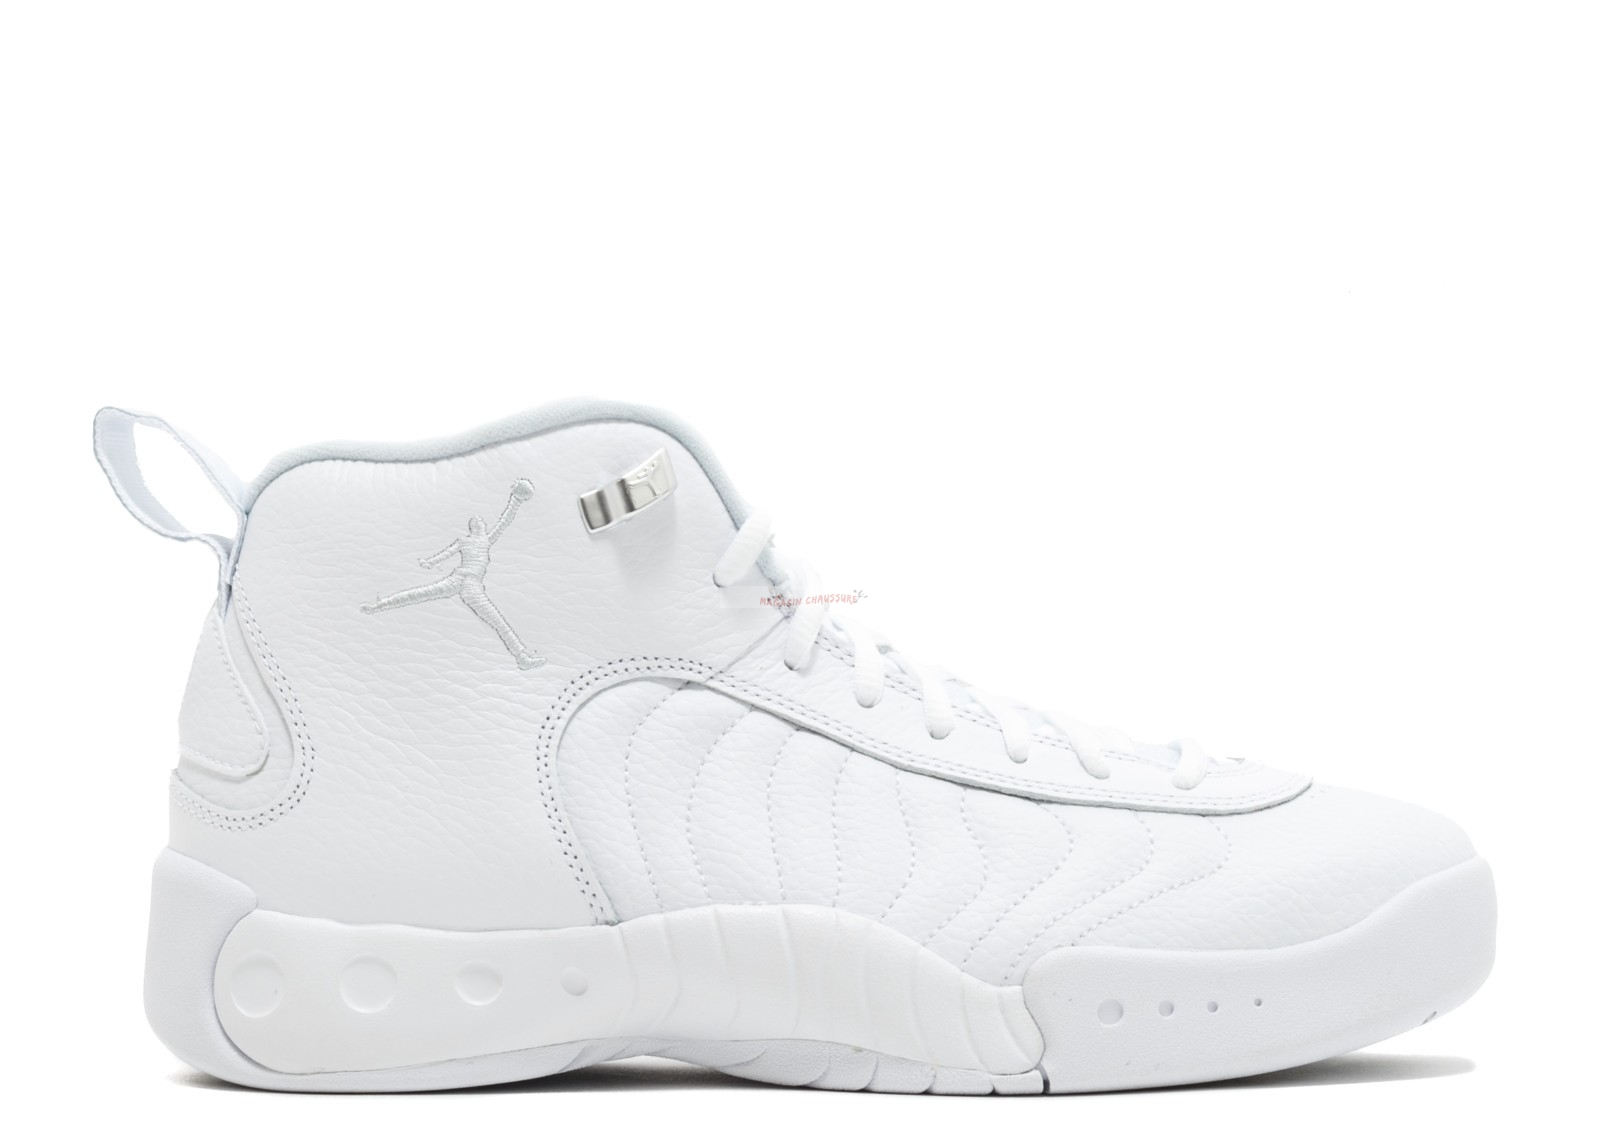 Air Jordan Jumpman Pro Blanc (906876-100) Chaussure de Basket